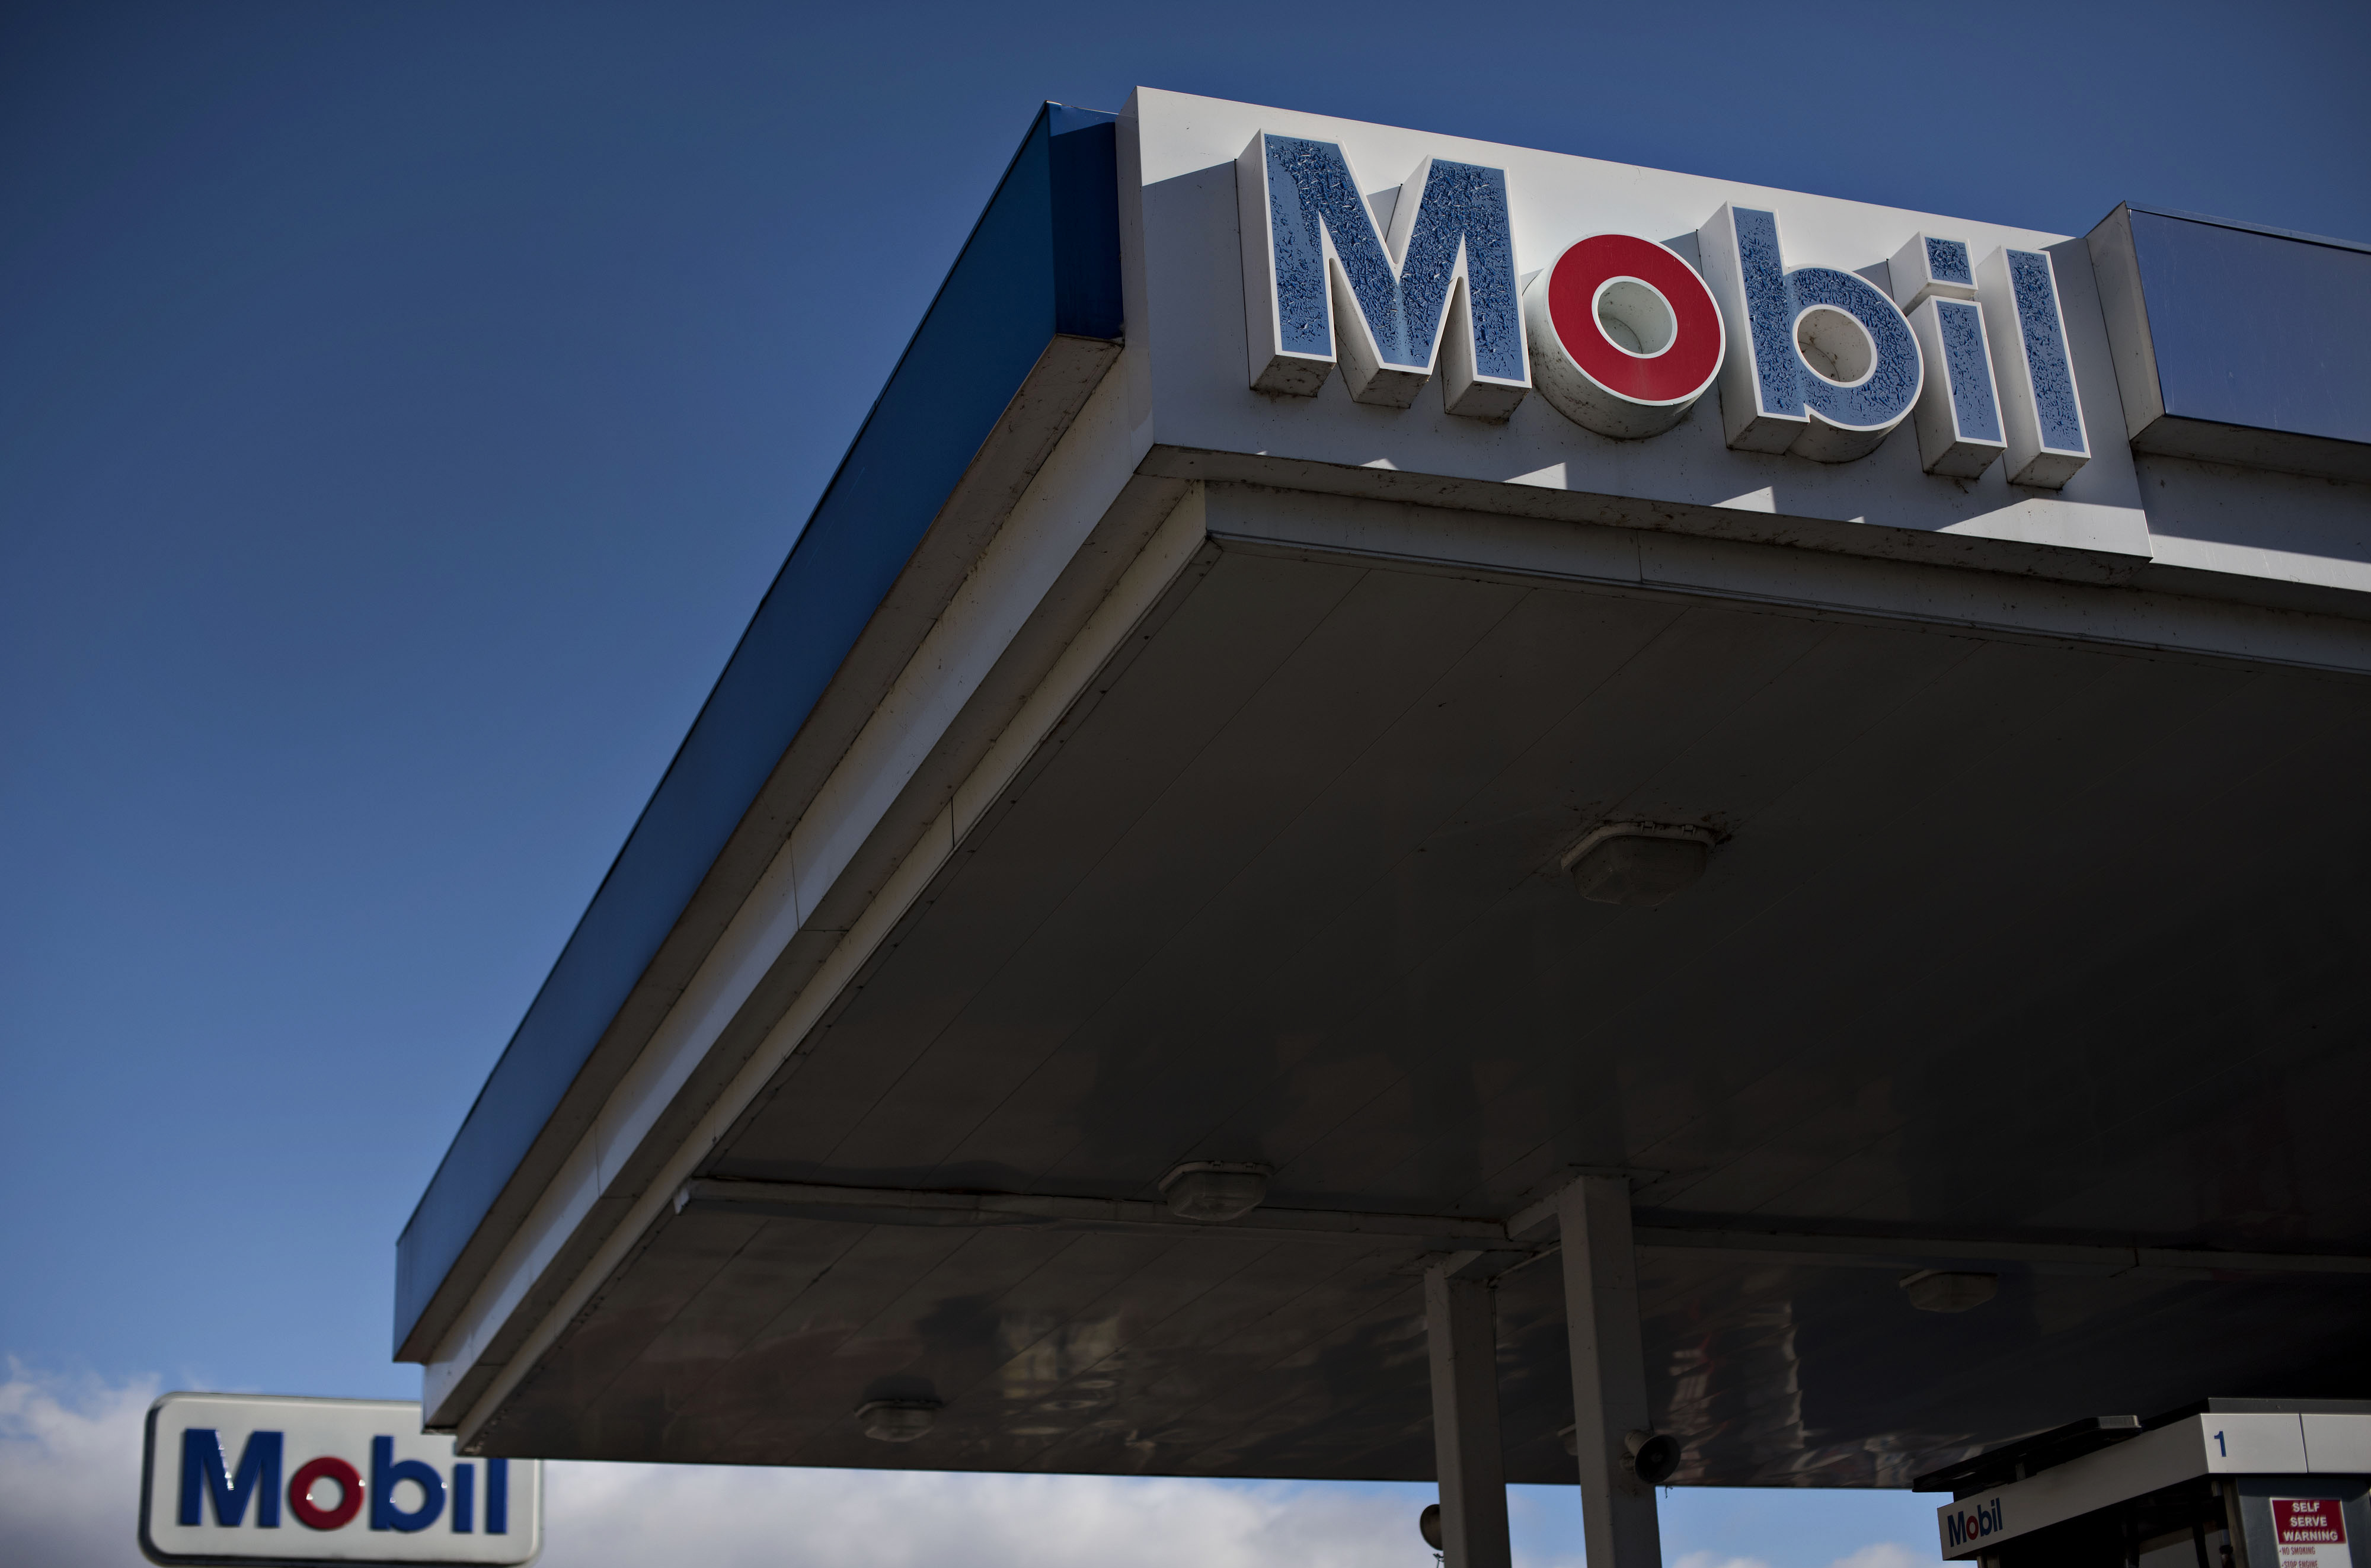 A Mobil gas station in Peoria, Illinois, on Oct. 29, 2014.